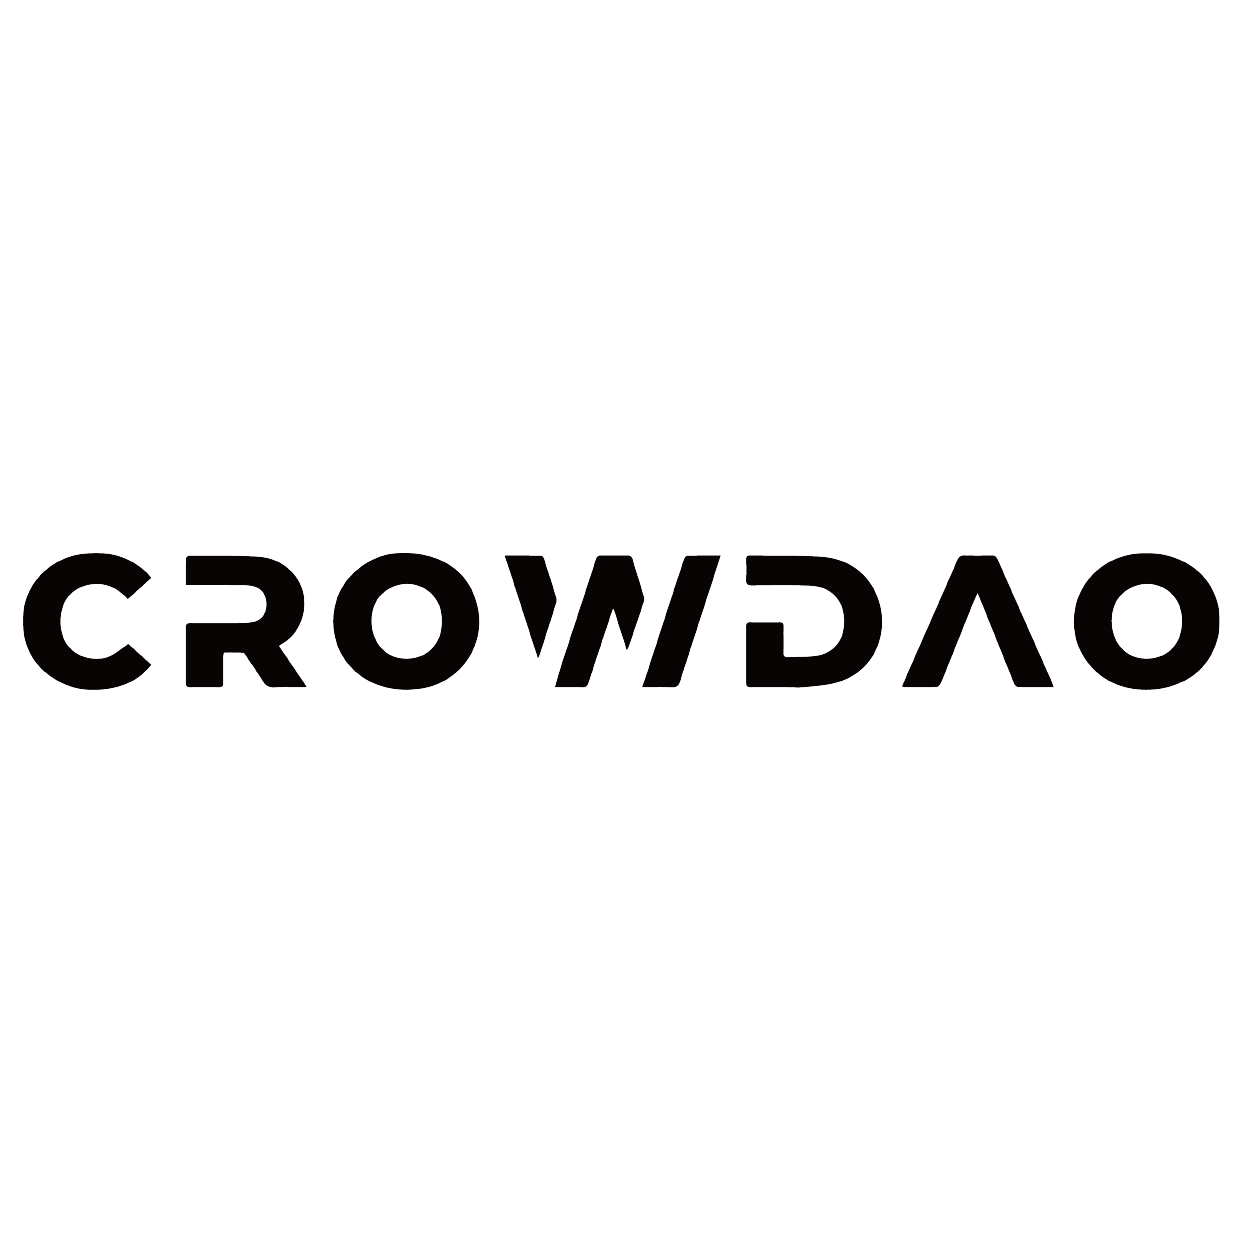 Crowdao ロゴ